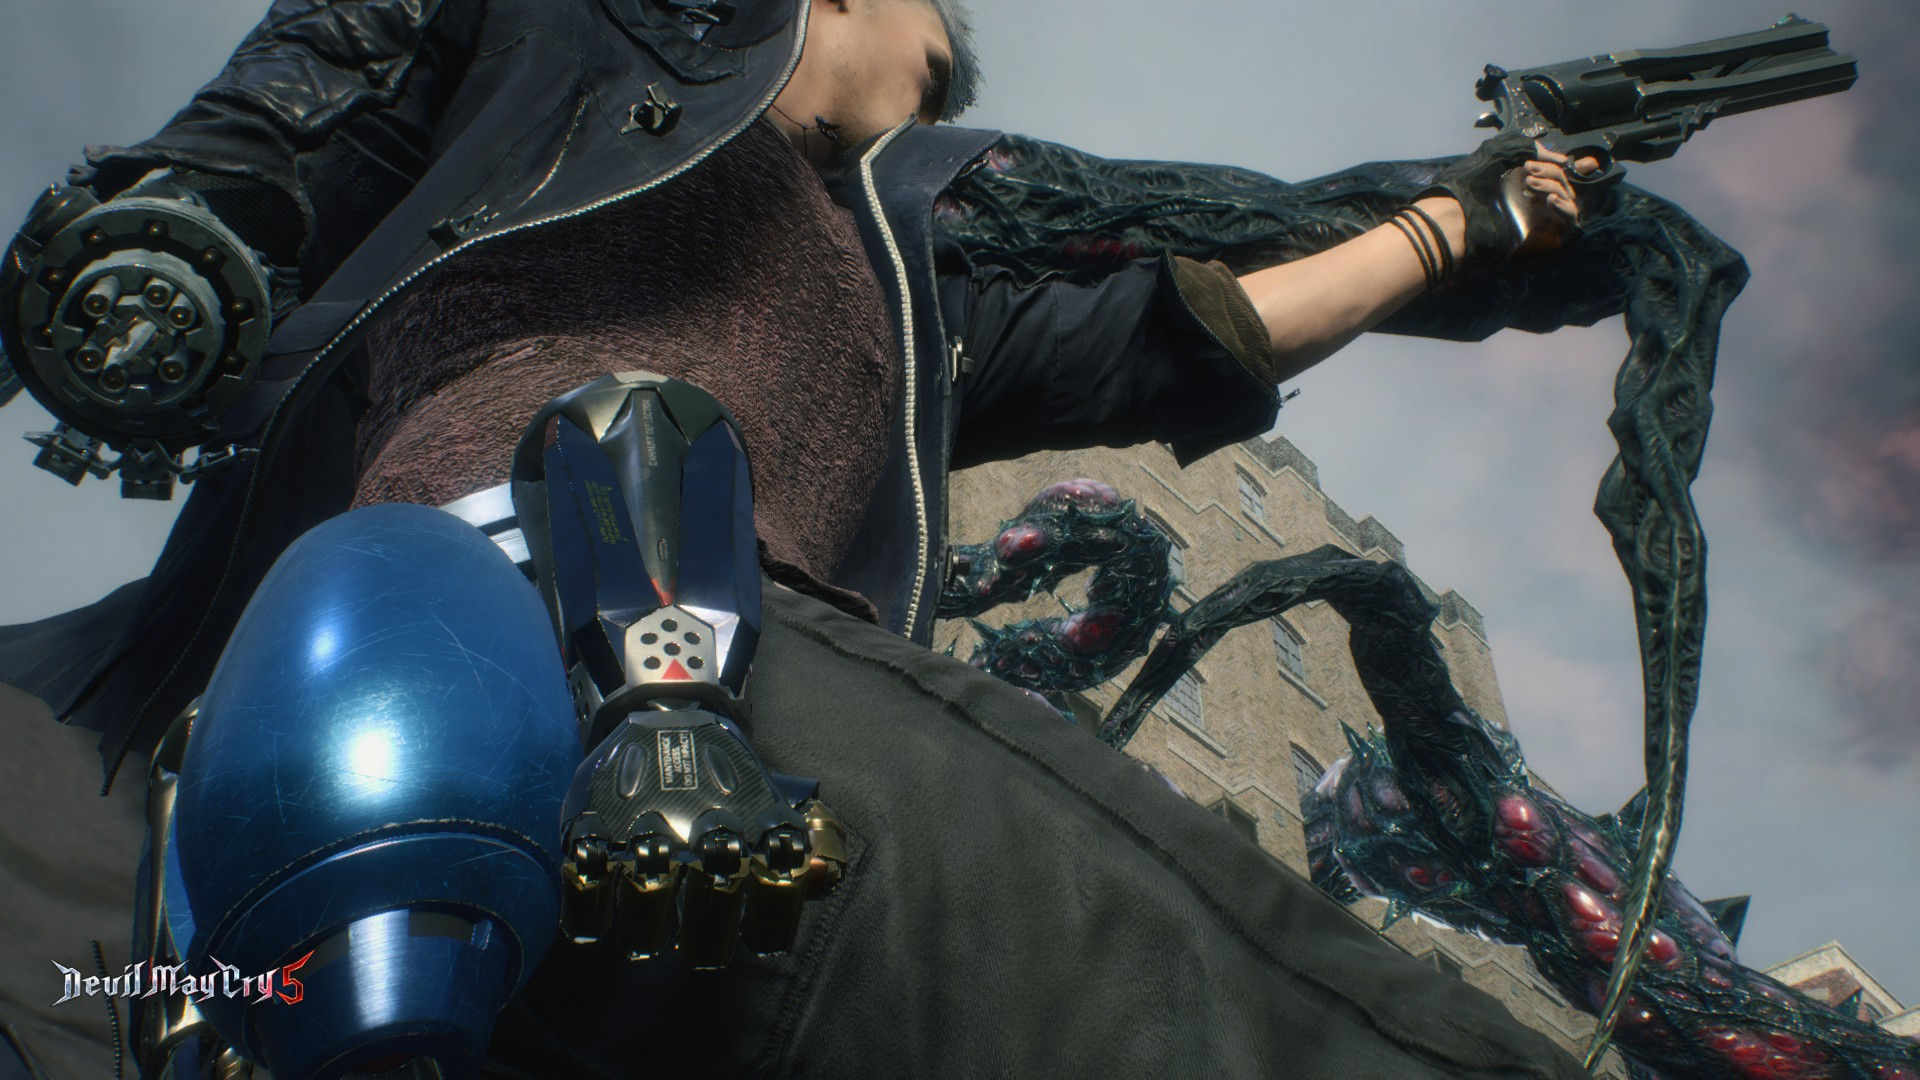 20190720202125_1.jpg - Devil May Cry 5